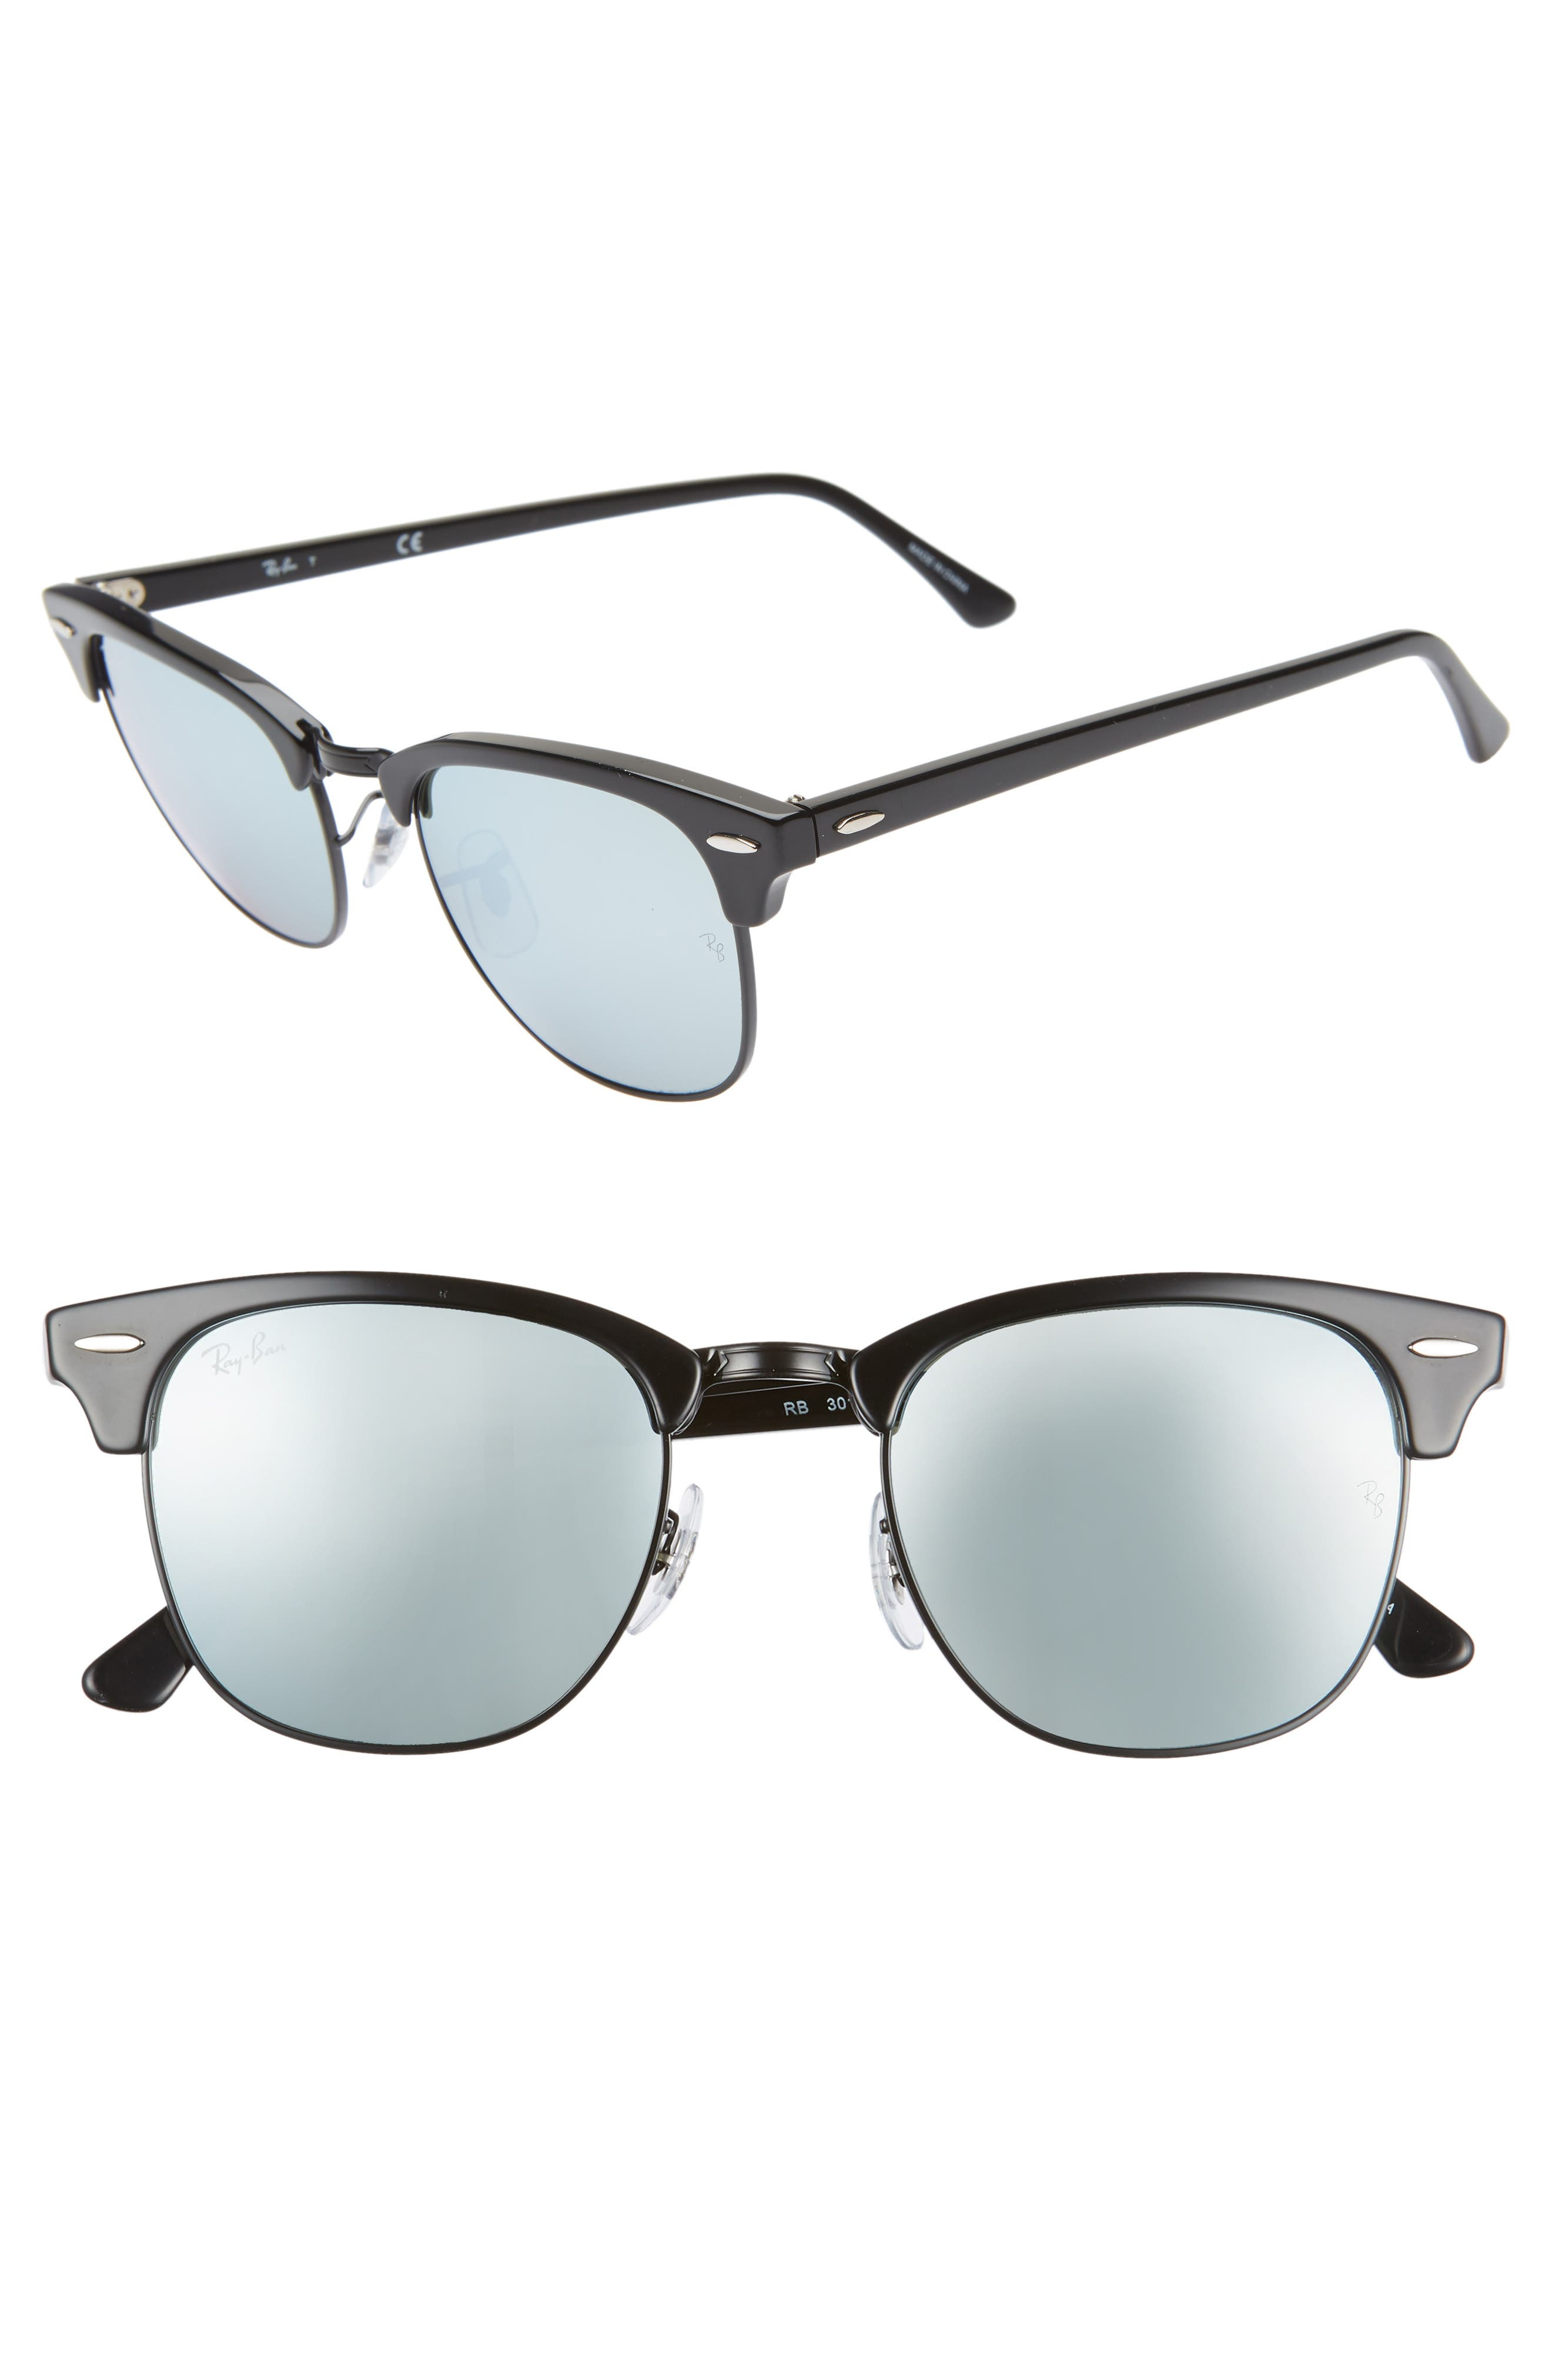 RAY-BAN, Standard Clubmaster 51mm Sunglasses, Main thumbnail 1, color, BLACK/ BLUE MIRROR